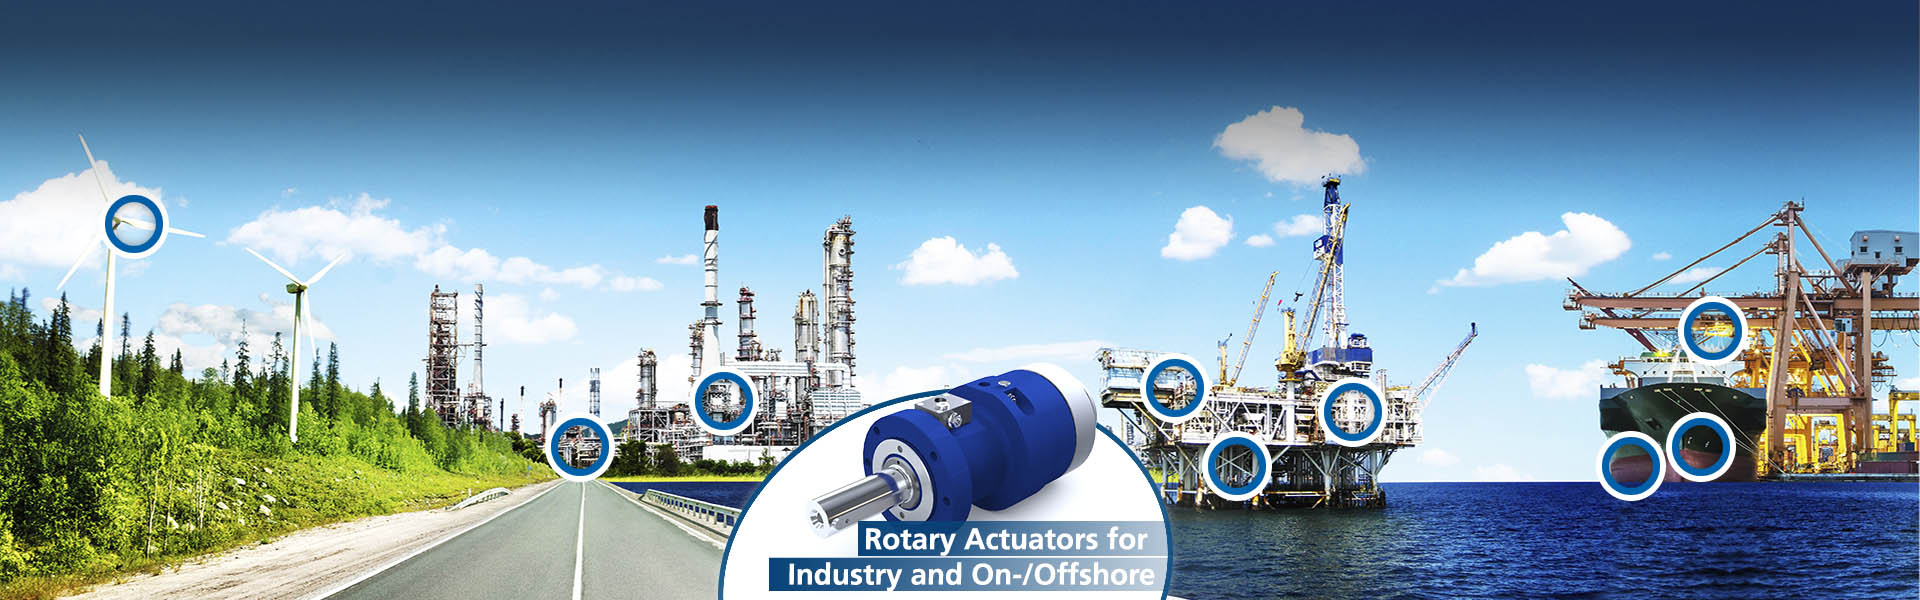 Rotary Actuators for Industry and On+Offshore